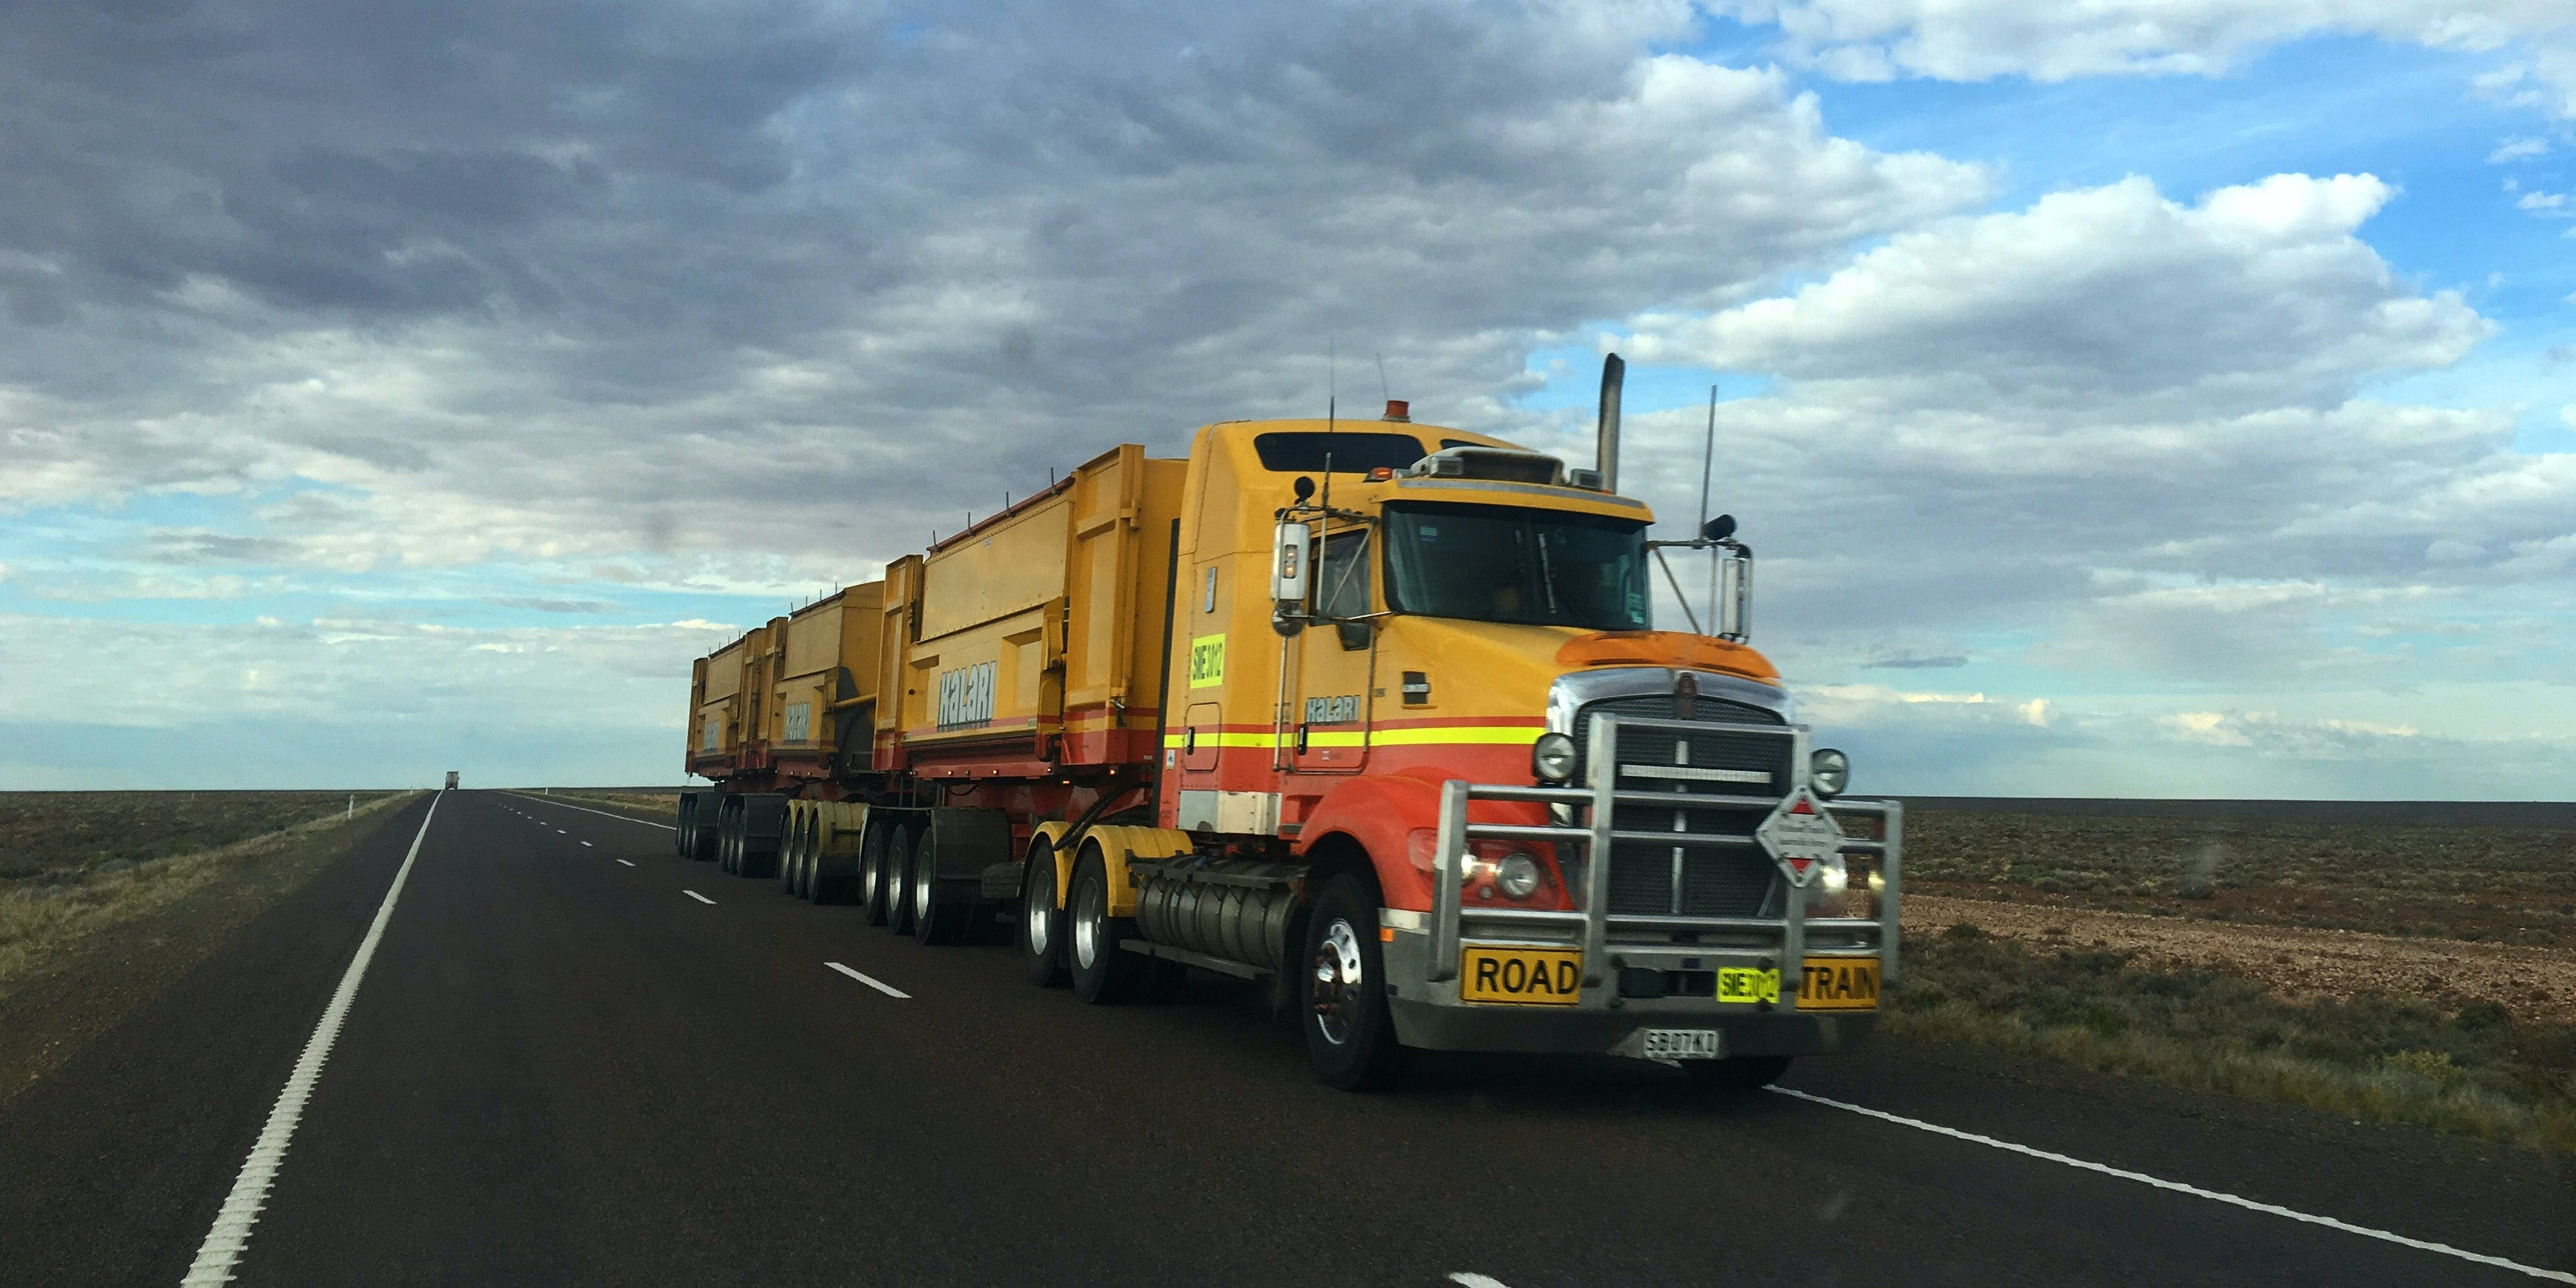 Will Oregon Be The First State To Allow weed shipments across state lines? Here, a semi truck is shown on a highway